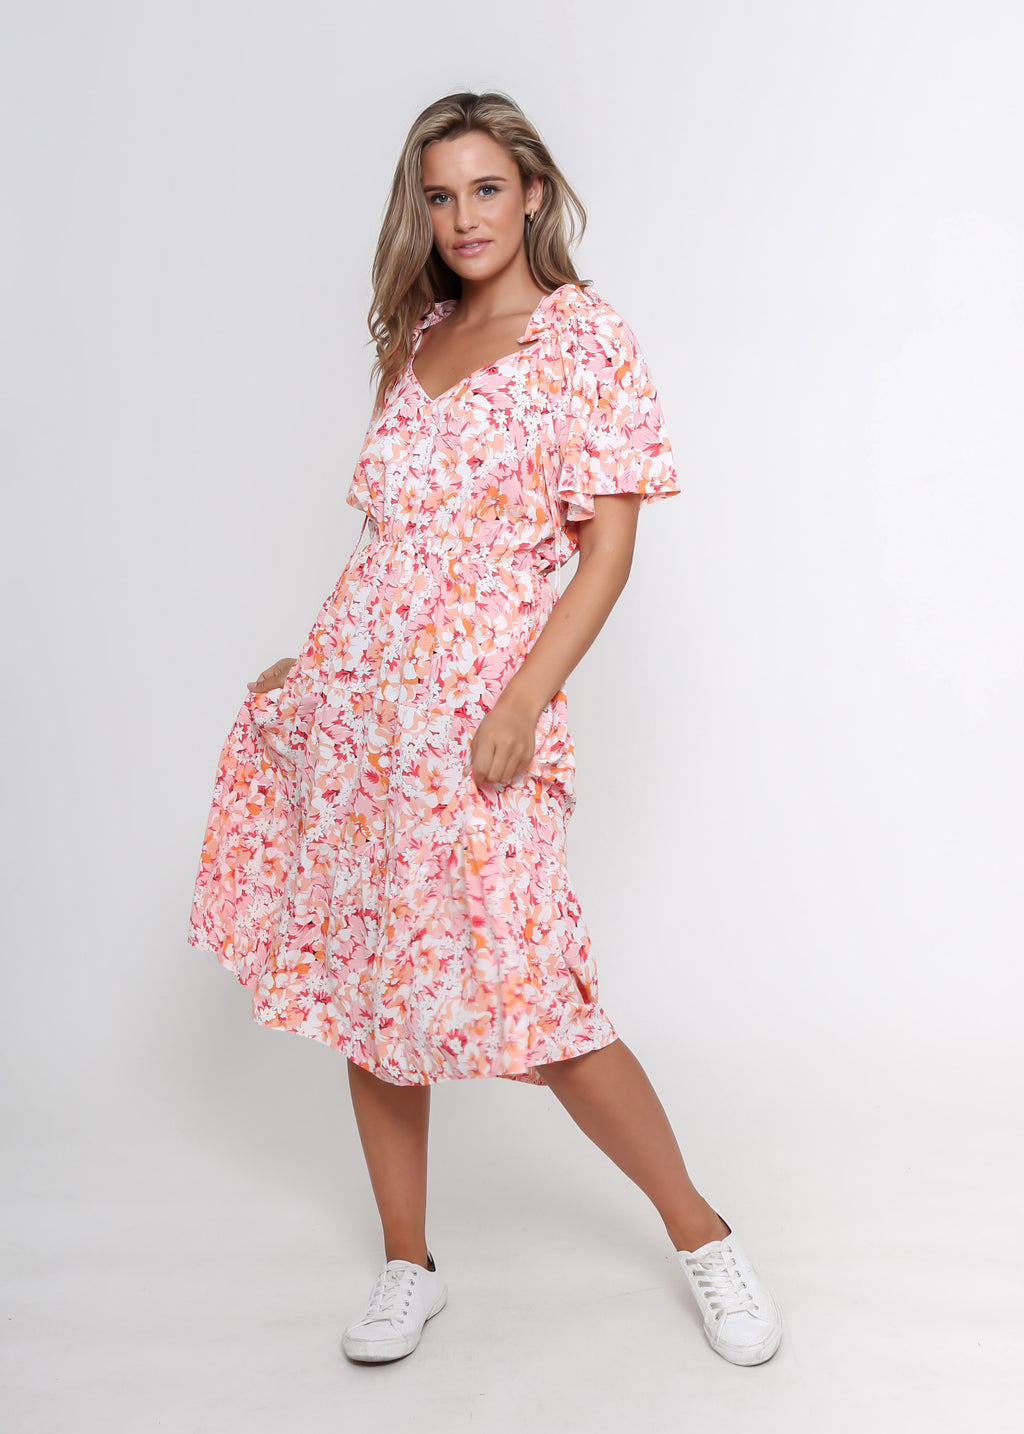 NEW - KARINA DRESS - PINK/WHITE